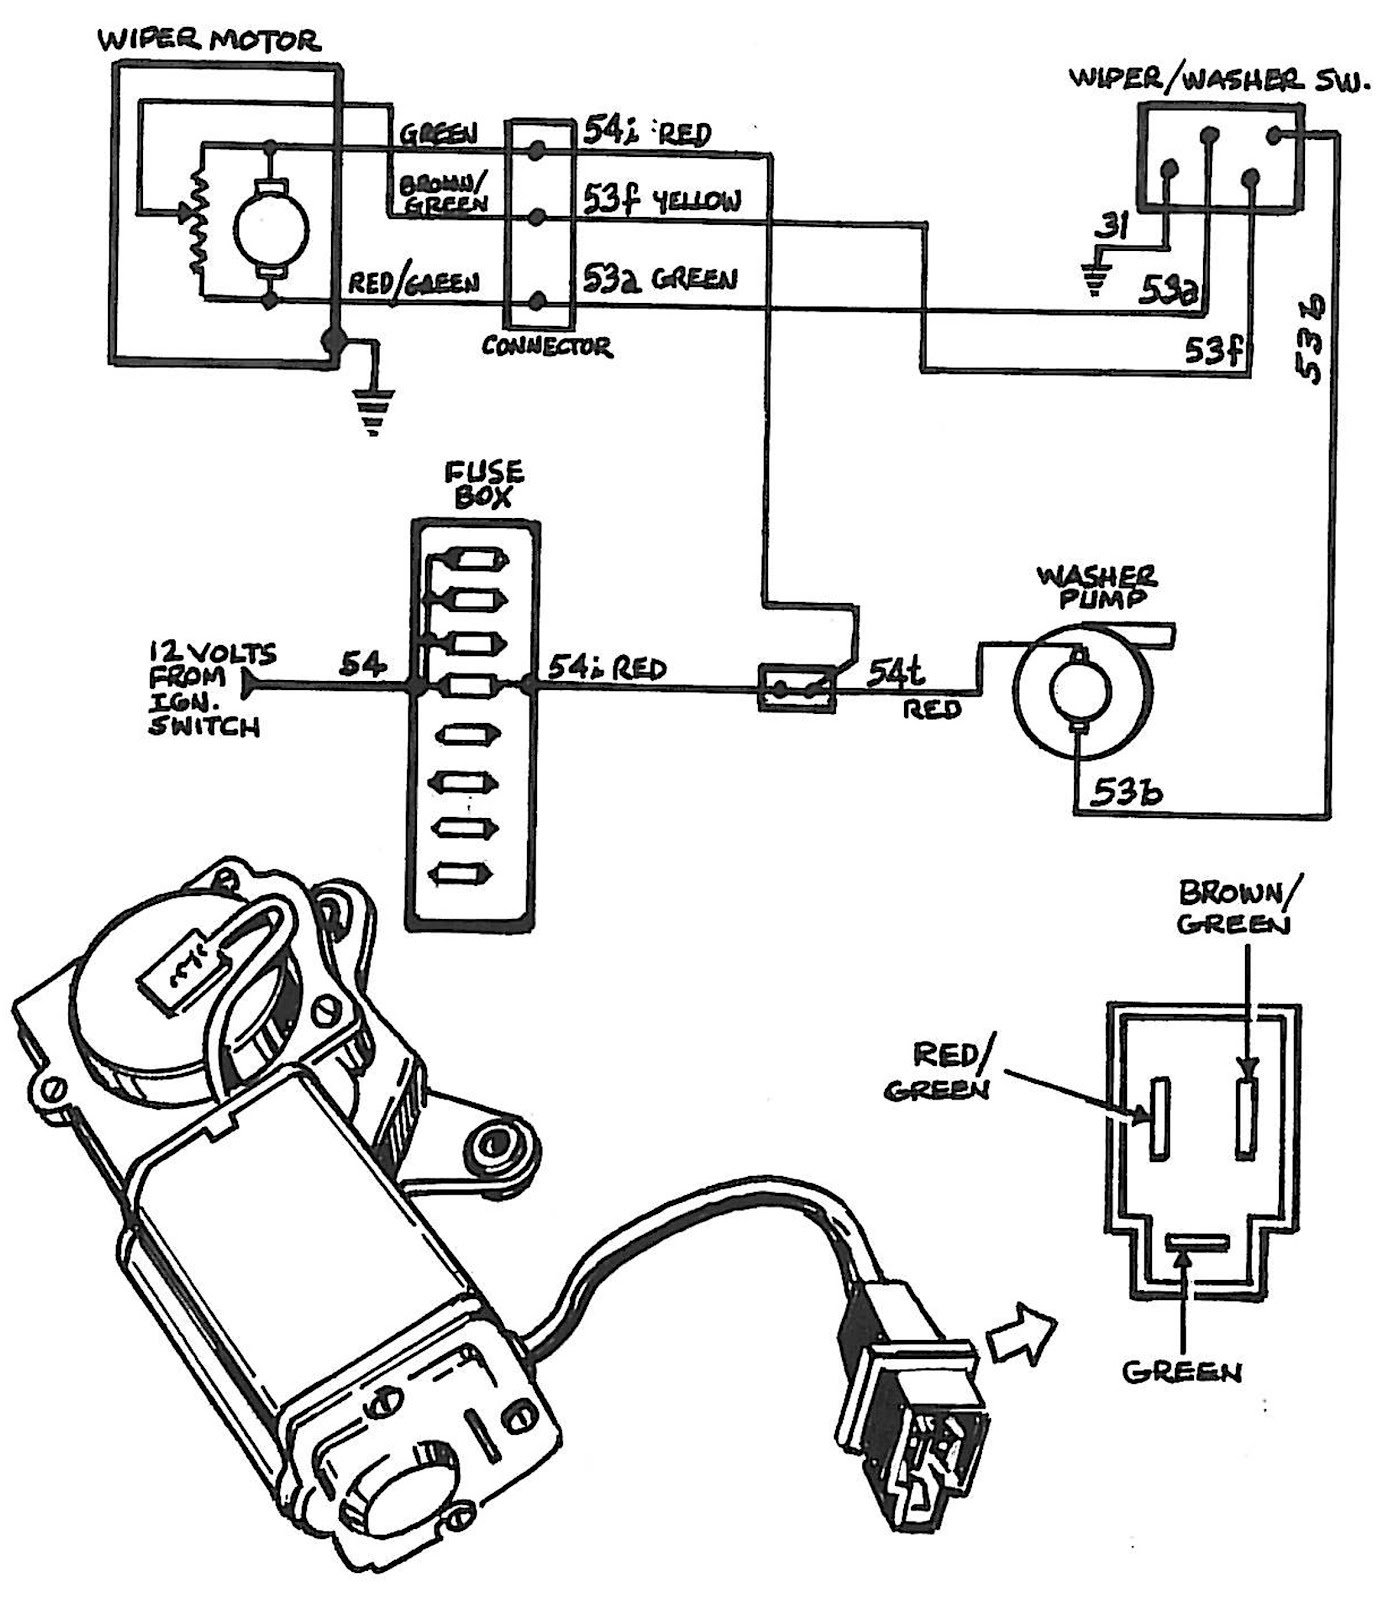 Windshield Wiper Motor Wiring Diagram on 1999 ford windstar wiring diagram